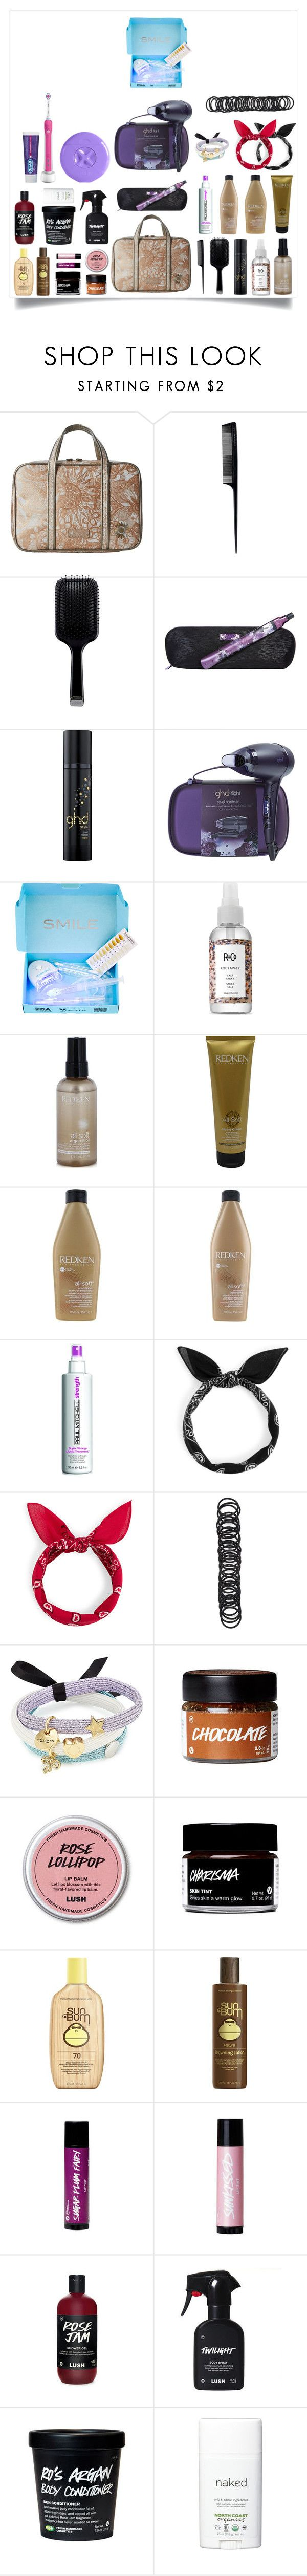 """""""Travel crap"""" by littlewhitedaisy ❤ liked on Polyvore featuring beauty, Sakroots, GHD, Smile Sciences, R+Co, Redken, Paul Mitchell, Forever 21, Marc Jacobs and Sun Bum"""